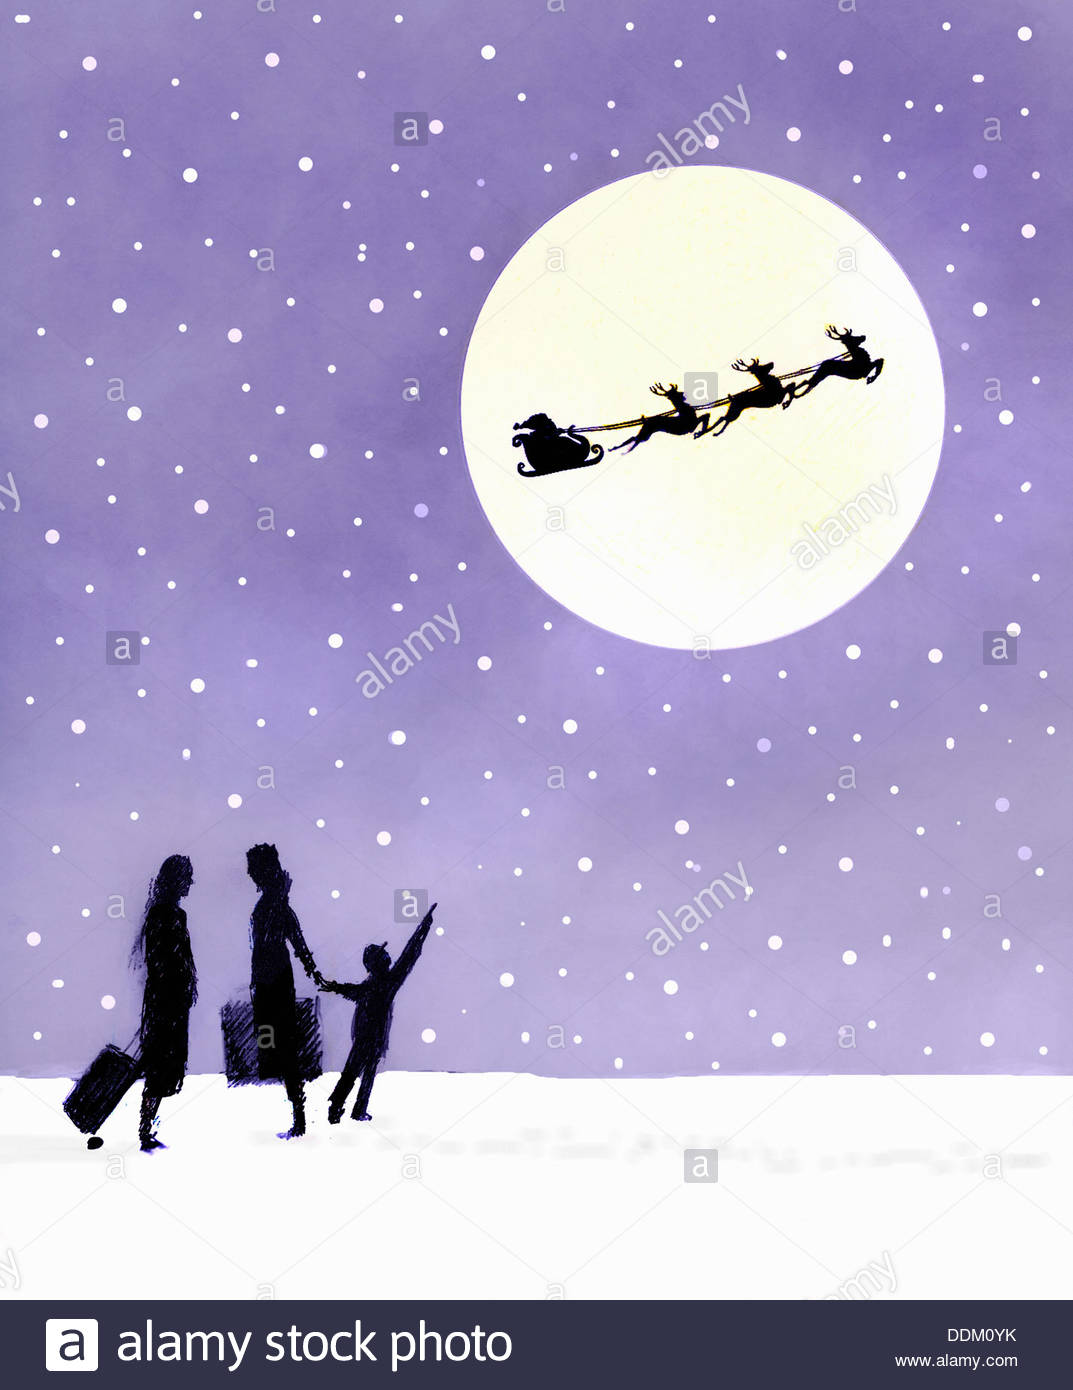 Child with mother looking up at silhouette of Santa Claus and reindeer in full moon - Stock Image